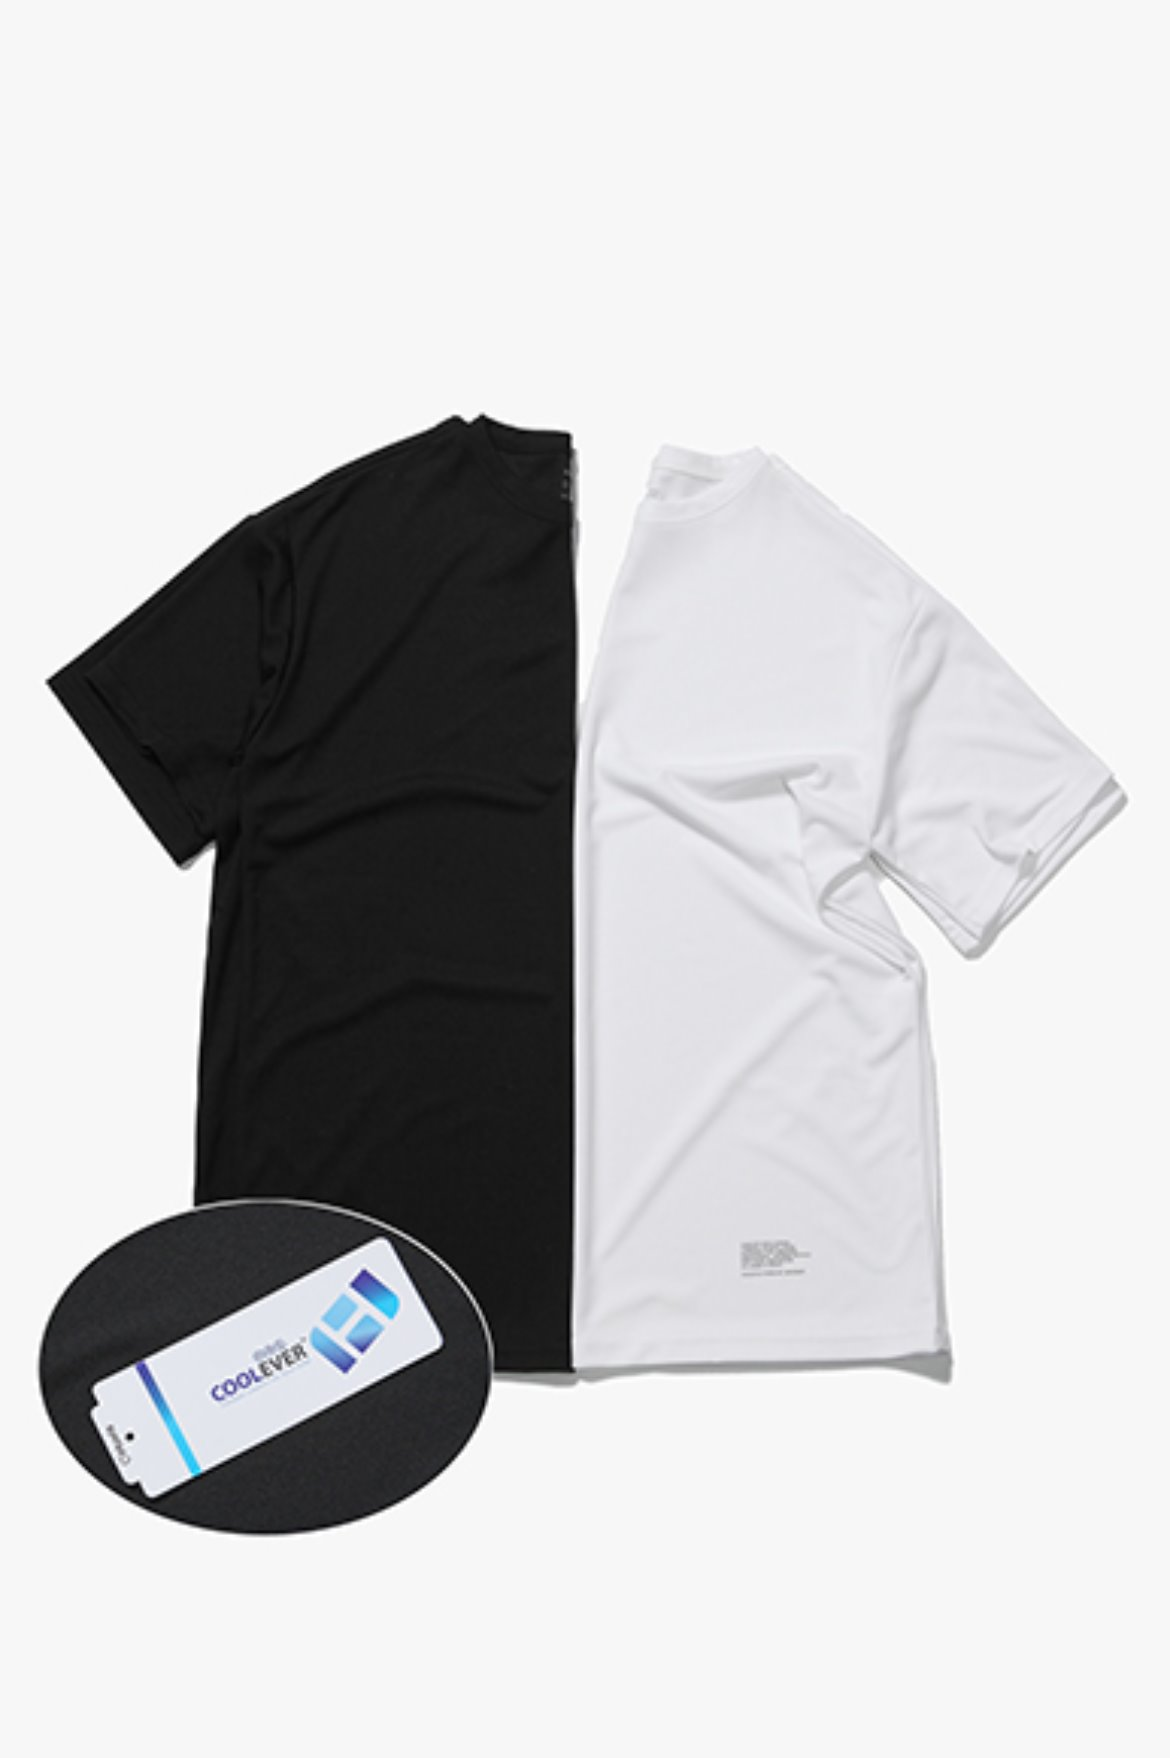 2Pack Coolever Regular Fit T-Shirts [Black/White]